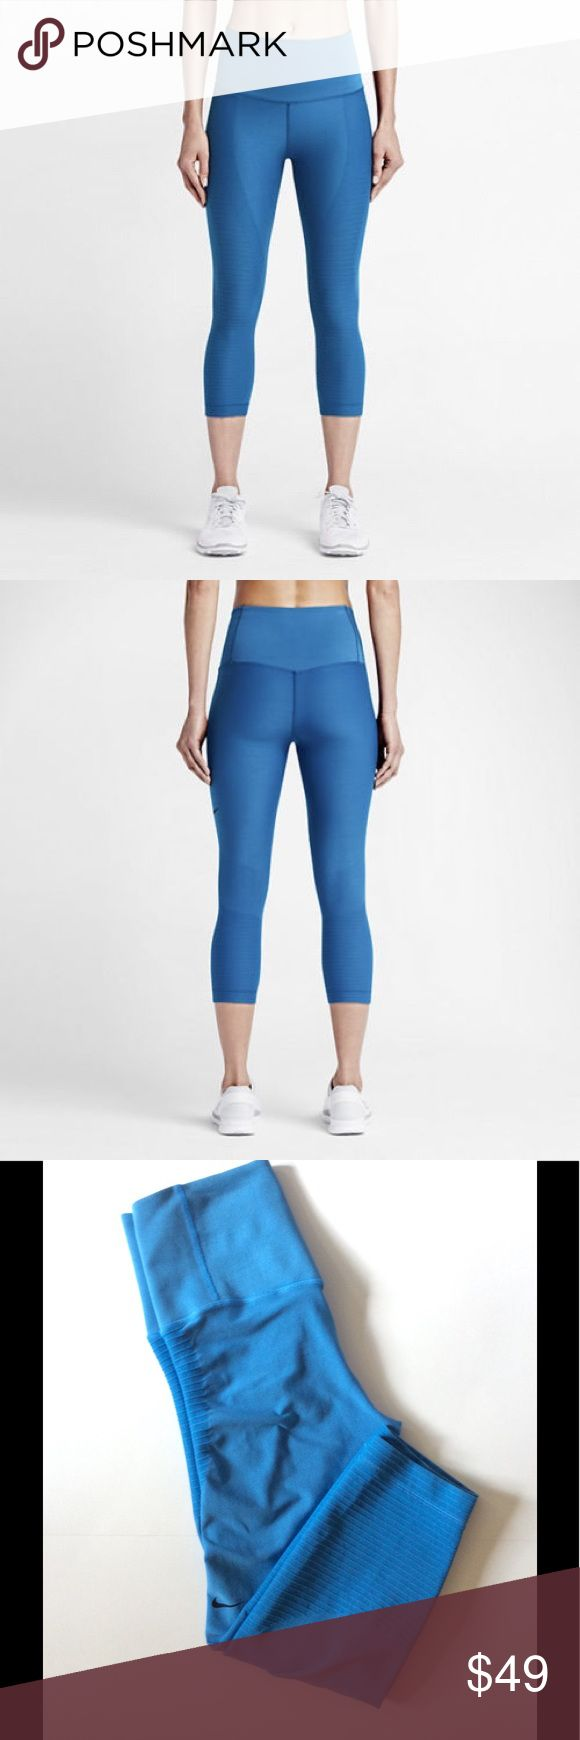 "Nike Zoned Sculpt Tight Fit Training Capri Nike Zoned Sculpt tight fit training capris, blue.  Size large; 13"" width, 10.5"" rise, 21"" inseam.  88% nylon, 12% spandex.  Tights in good used condition.  Last picture shows small thread pulls, there are a few. Nike Pants Track Pants & Joggers"